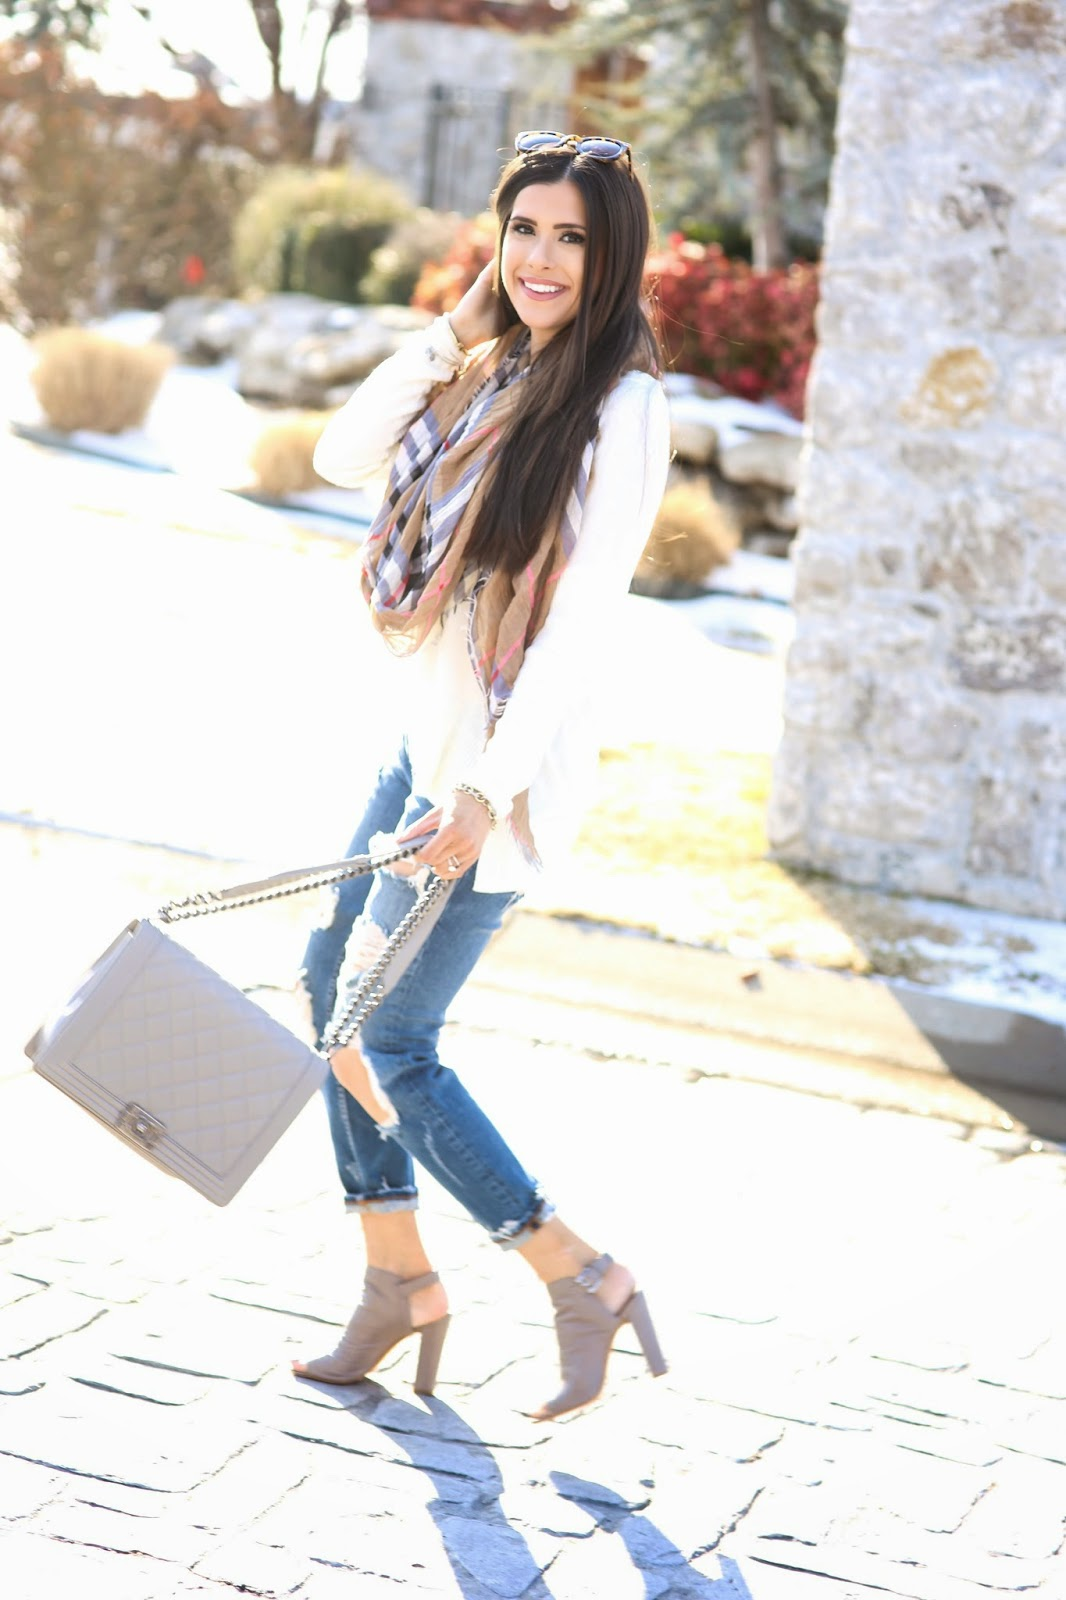 burberry inspired scarf, karen walker super duper, distressed boyfriend jeans, spring fashion 2015, spring outfit ideas 2015, pinterest spring outfits, chanel boy bag grey, emily gemma, the sweetest thing, vince camuto booties, burberry scarf, david yurman ring